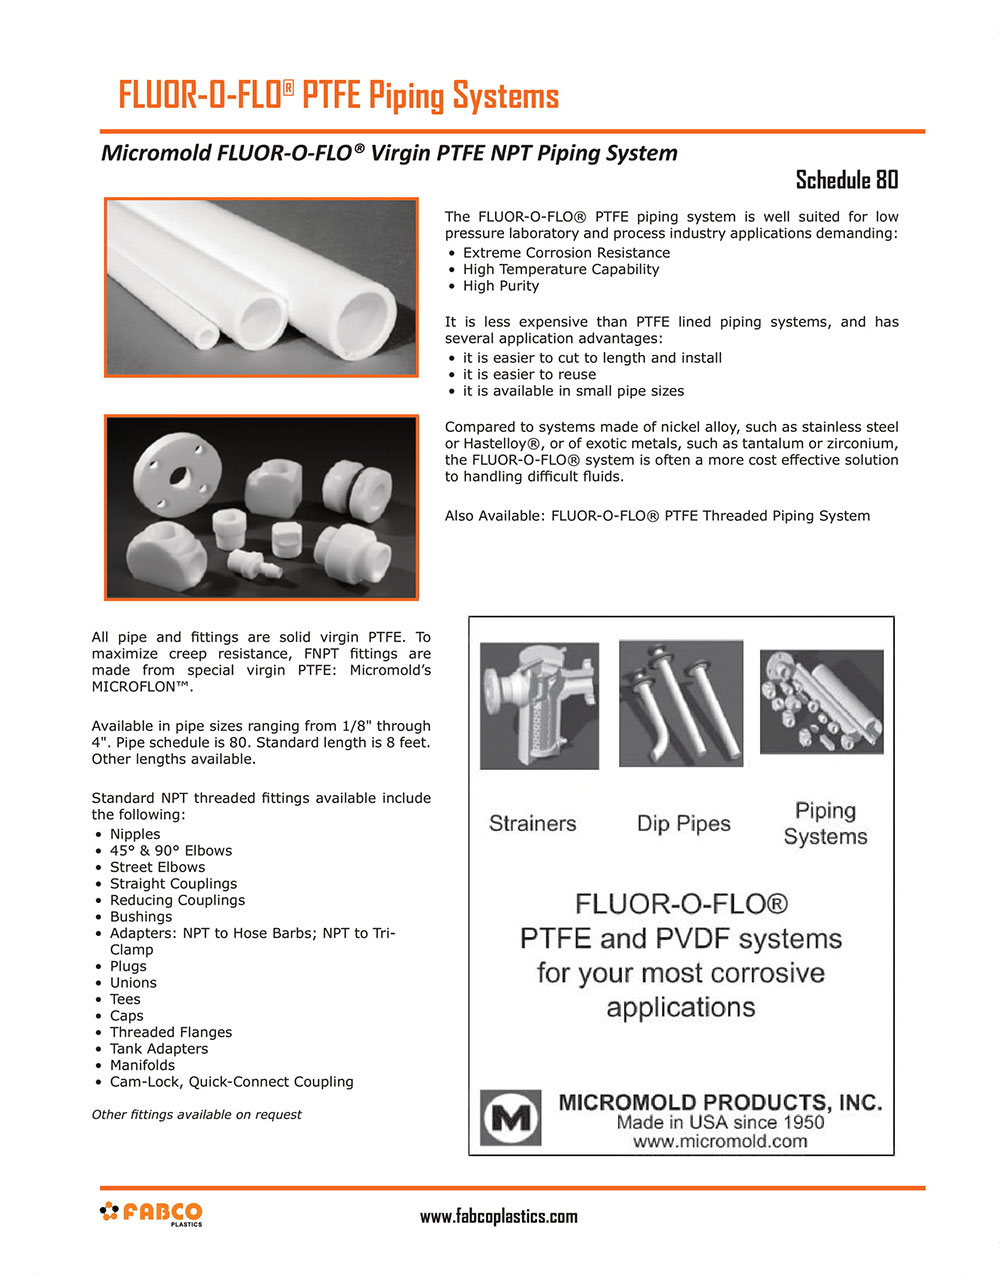 Micromold PTFE Piping and Accessories